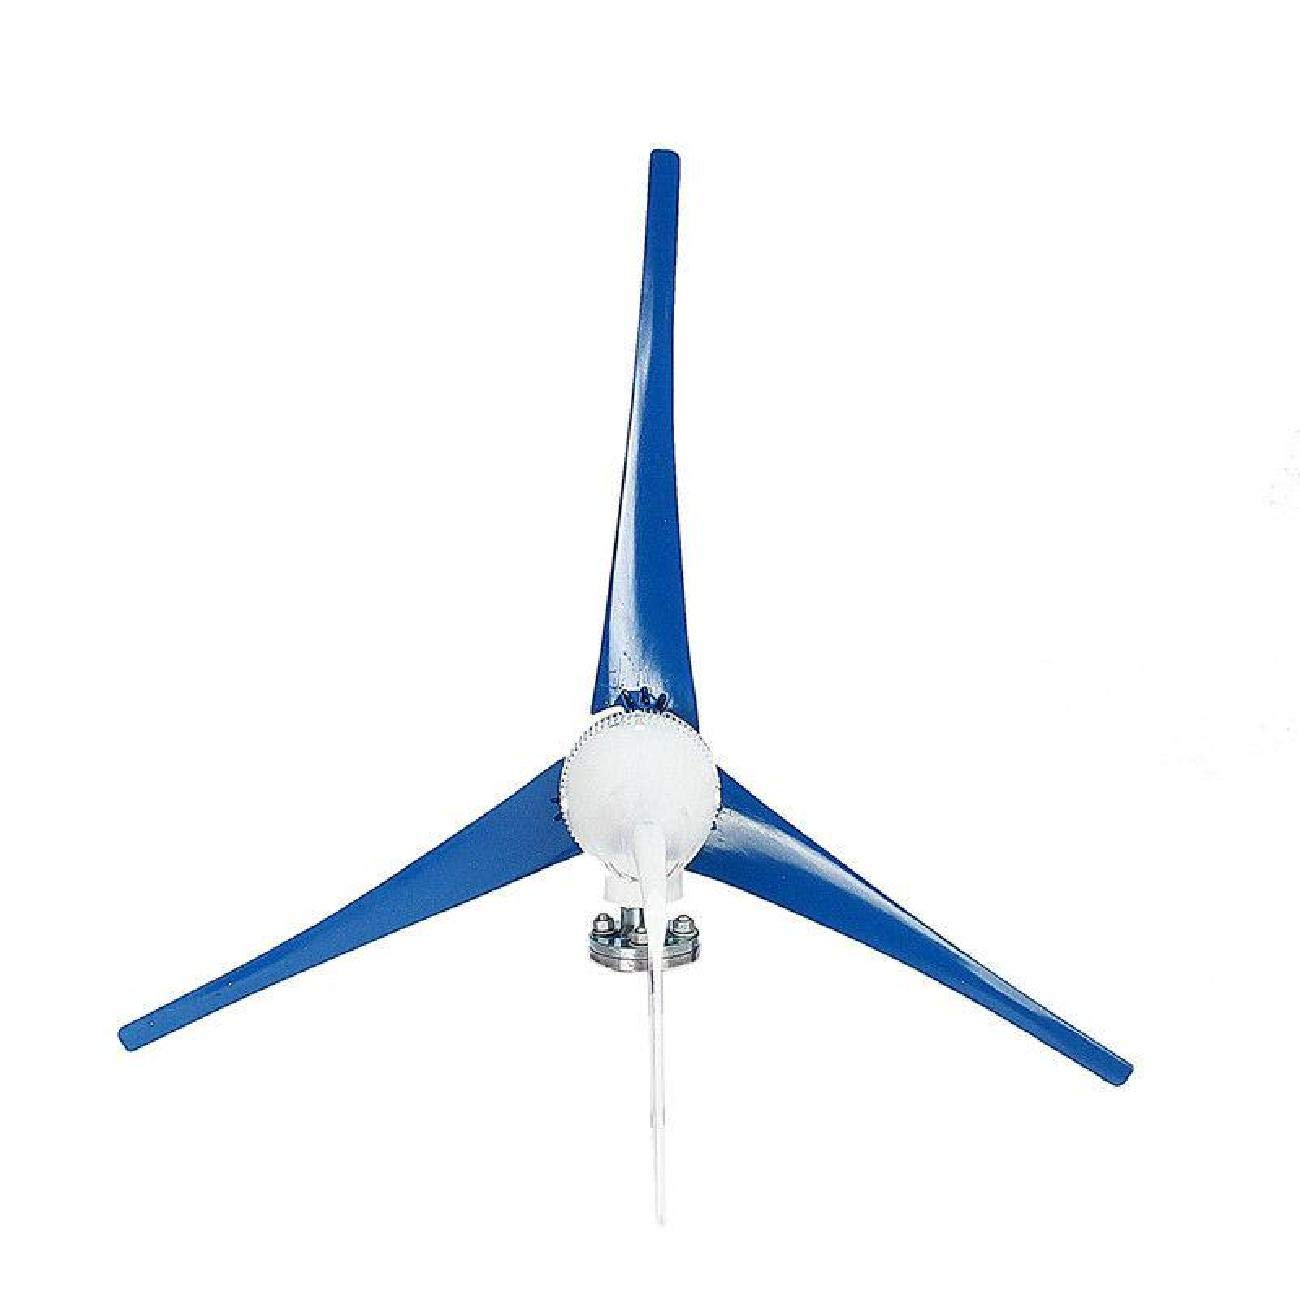 Dyna-Living Wind Turbine Generator 800W 12V Businesses 3 Blade with Controller for Marine RV Homes Industrial Energy